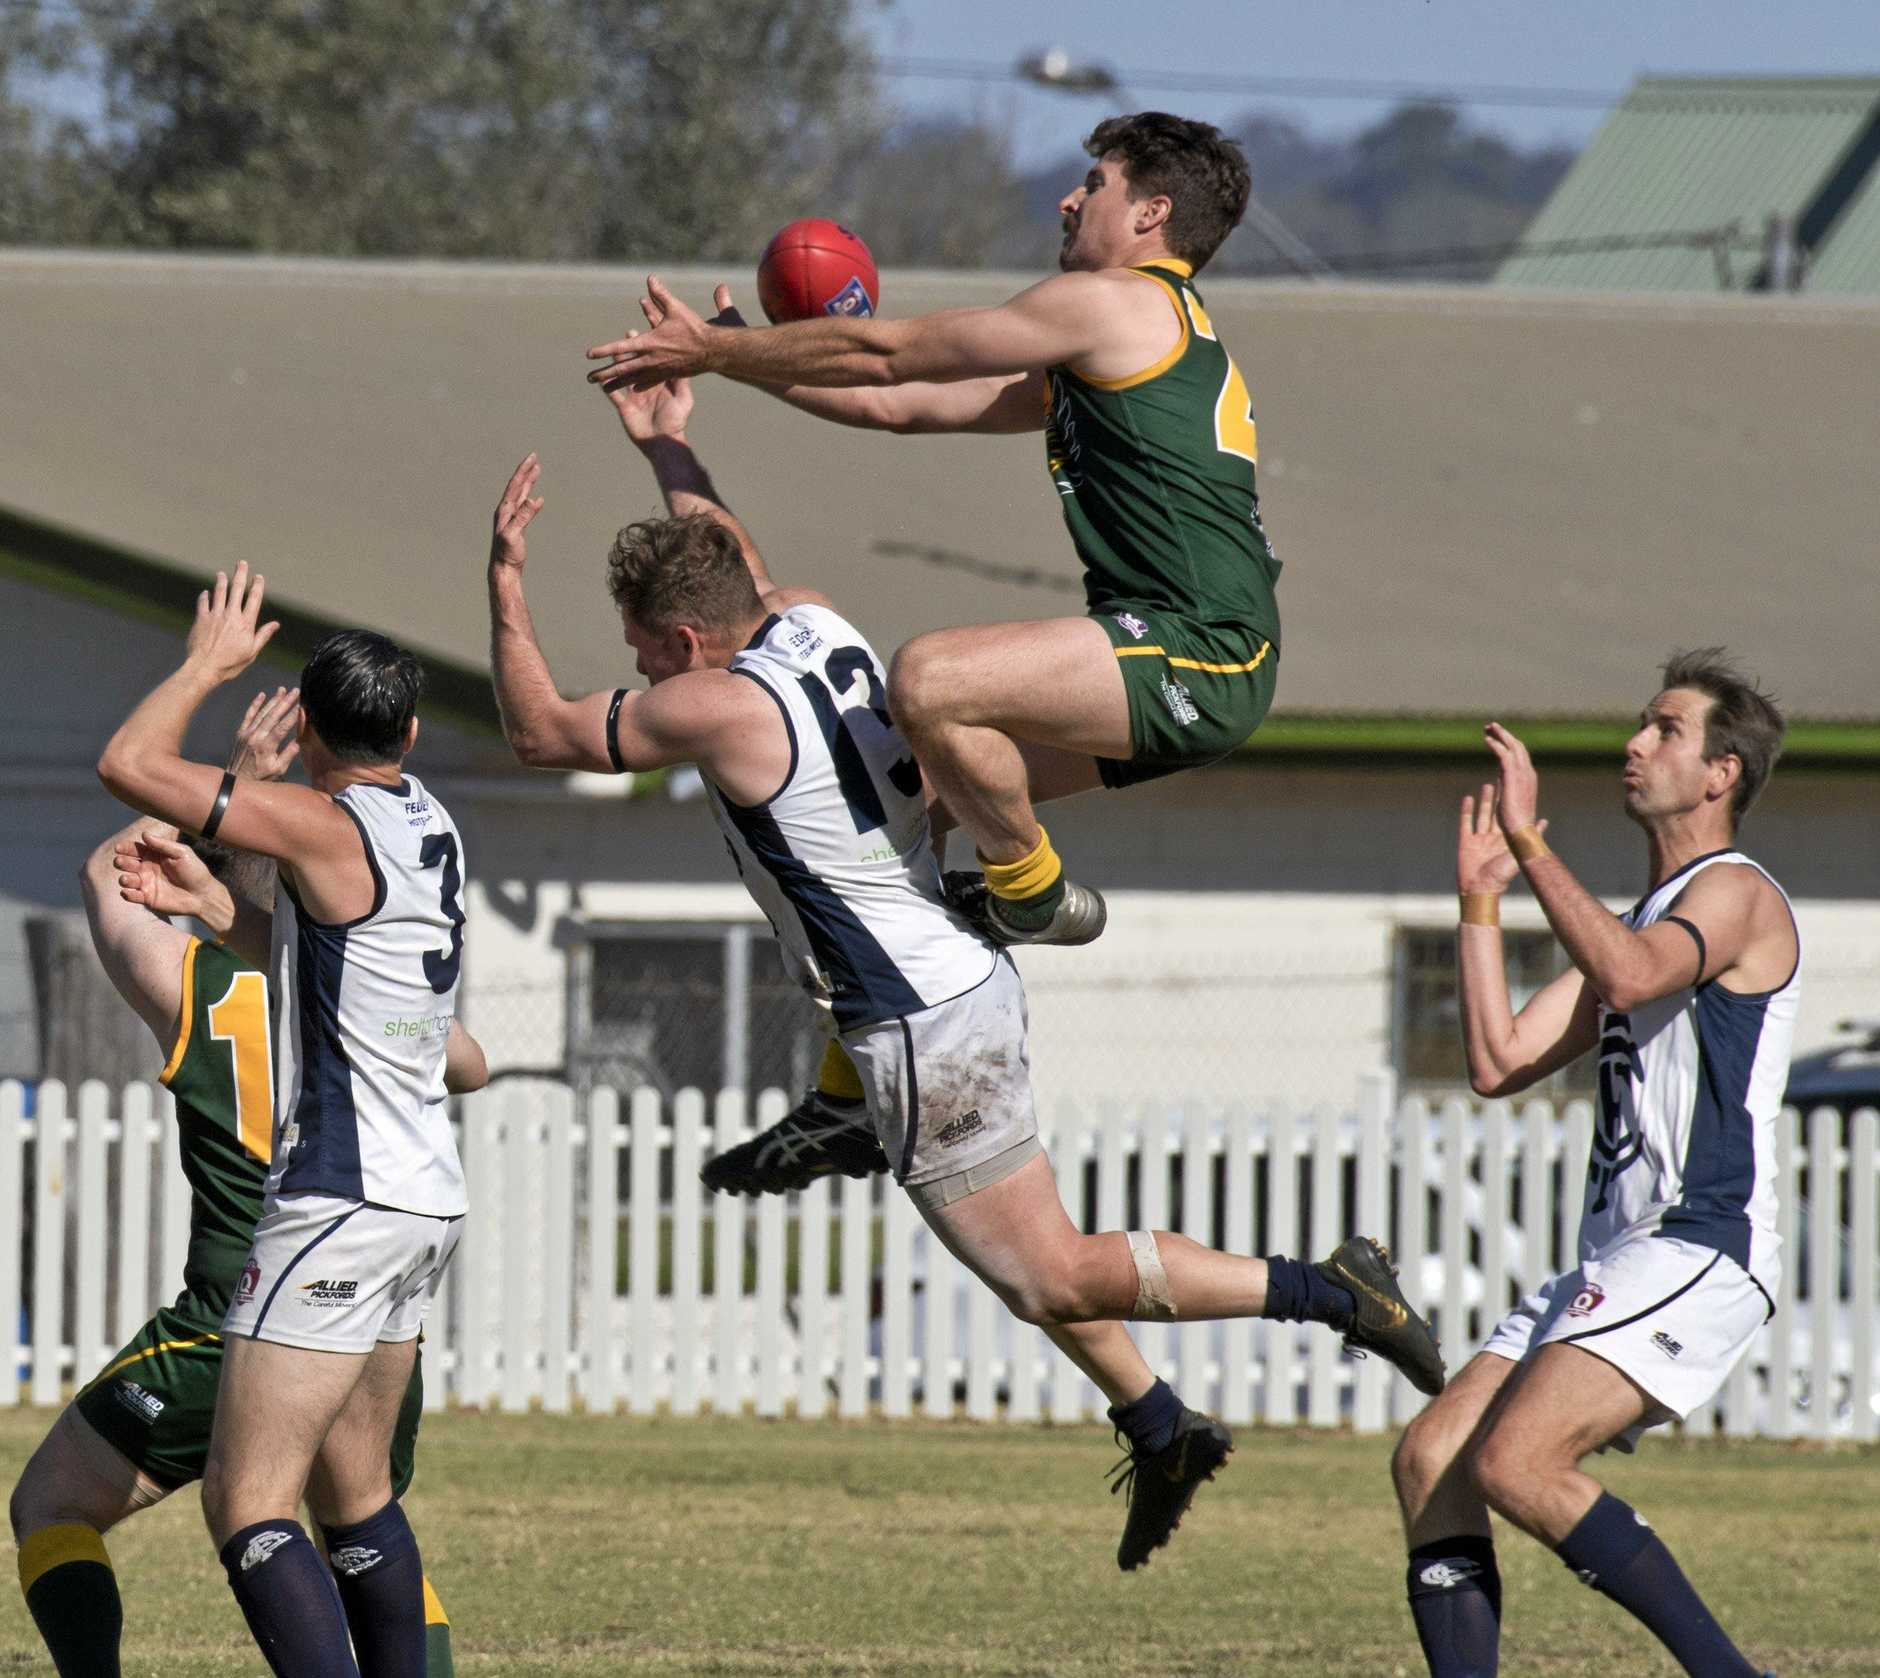 Goondiwindi's Angus Croft gets up high on the back of Coolaroo's Josh Stahlut during the Allied Pickfords Cup grand final.